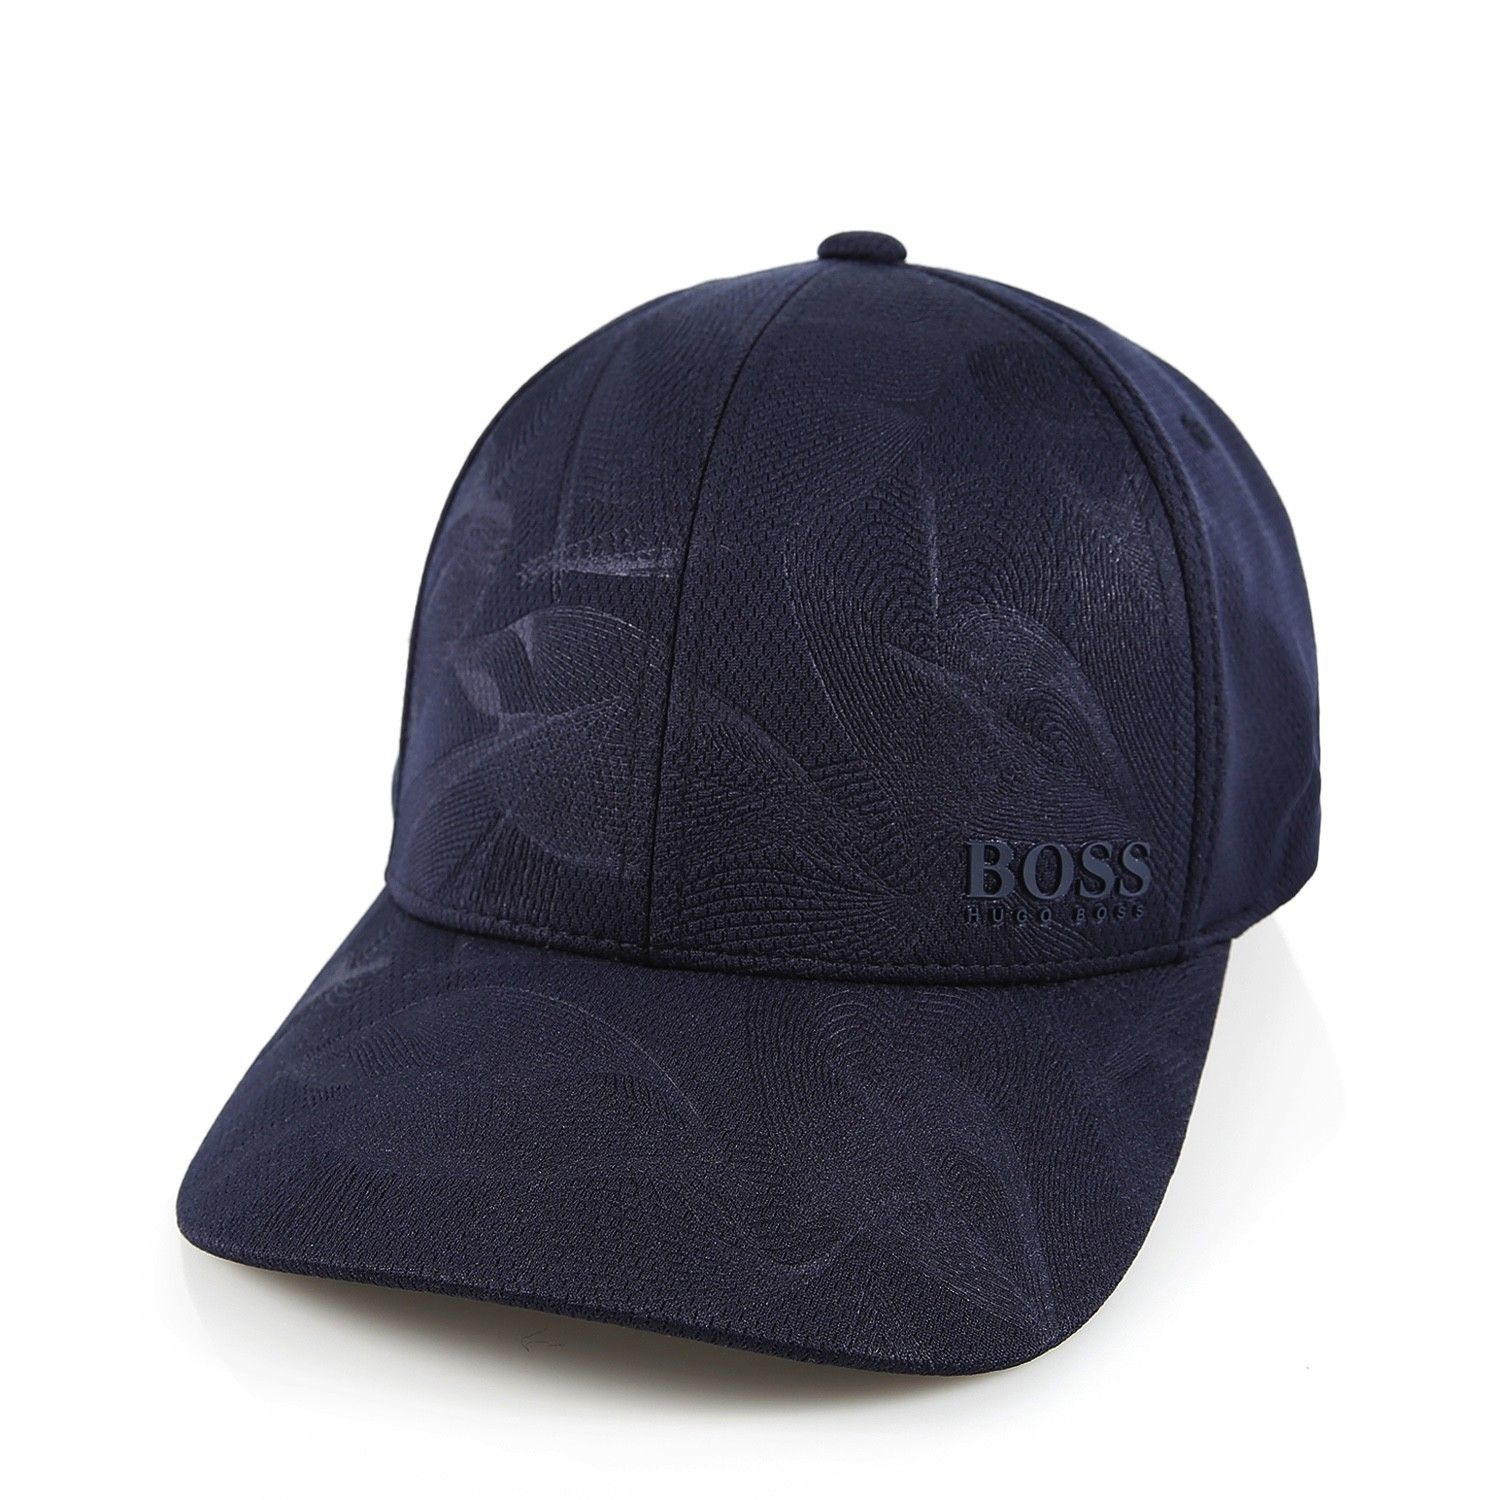 hugo boss men 39 s premium adjustable sport print hat cap. Black Bedroom Furniture Sets. Home Design Ideas